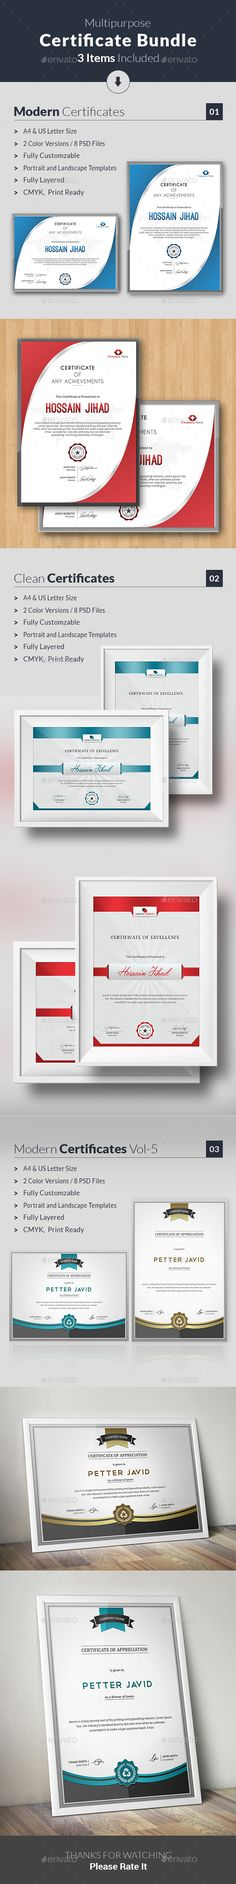 31 best PSD Templates   Certificate Design images on Pinterest     Certificate Template is suitable for your business  company or institution  in completion of any course  training  degree or job